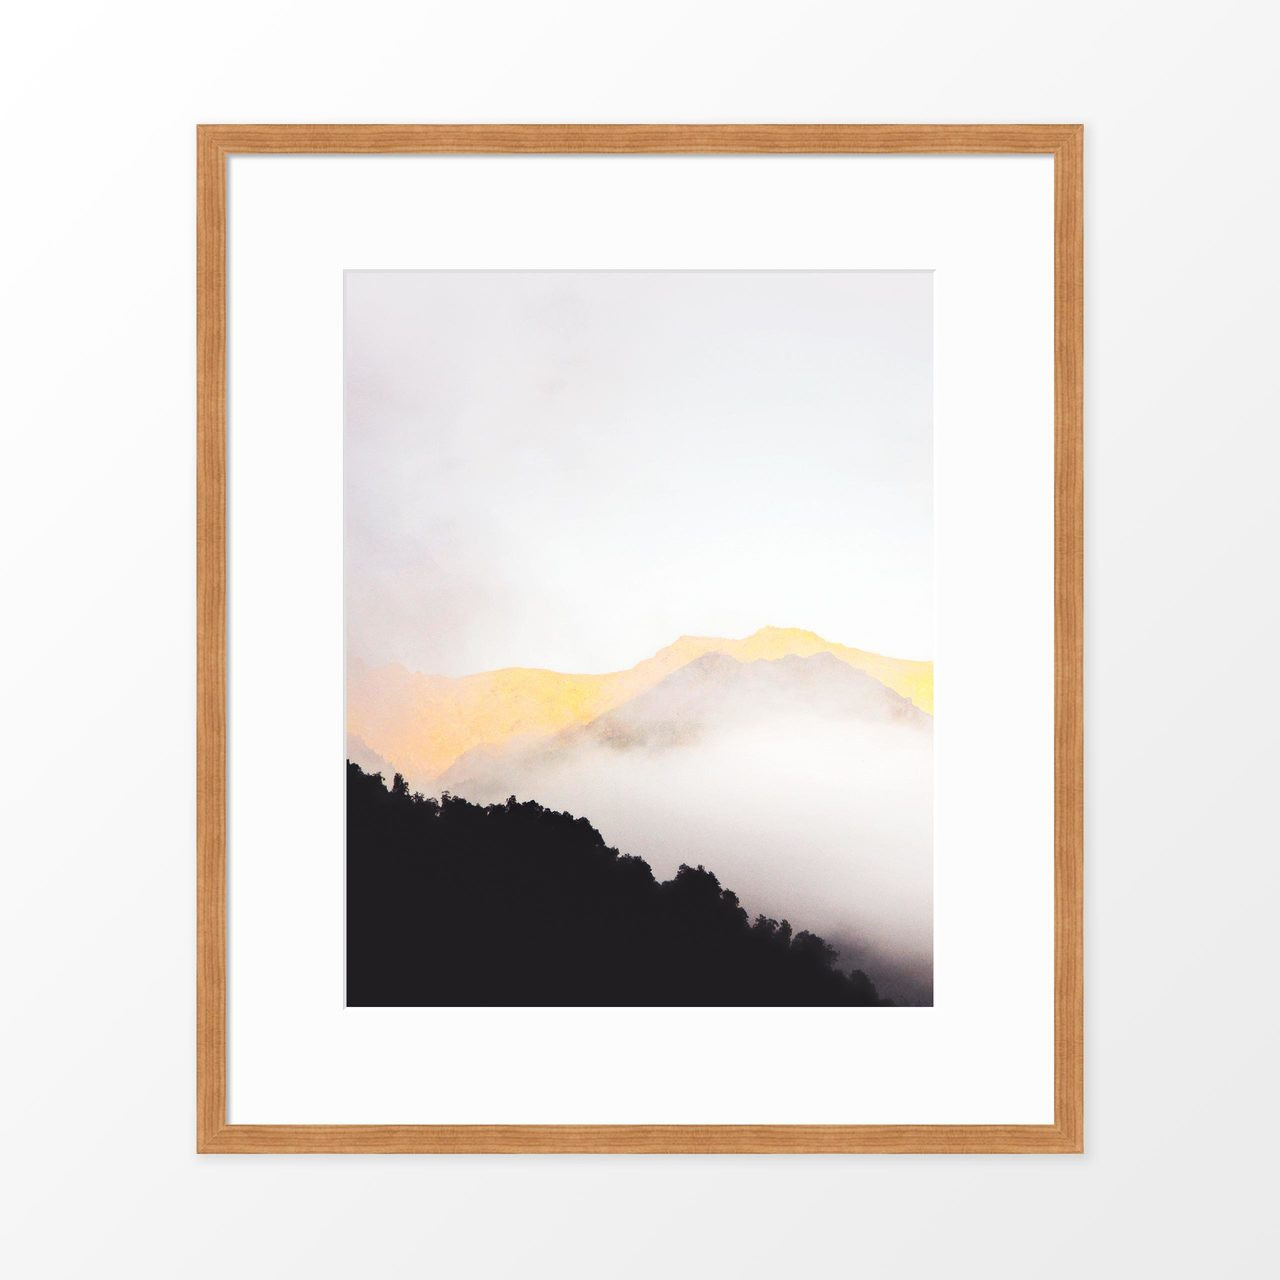 'Mountain Mist' Photography Art Print from The Printed Home